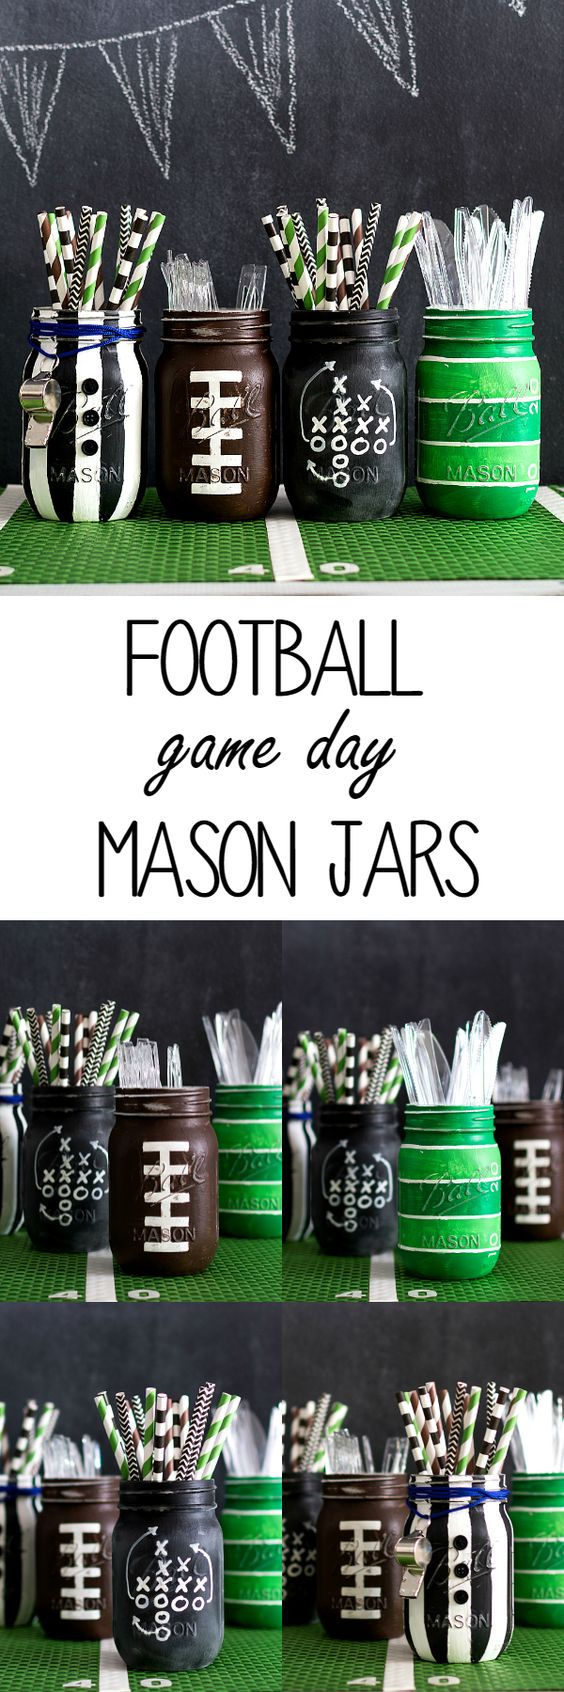 Football Party Mason Jars Jars Mason Jars And So Cute